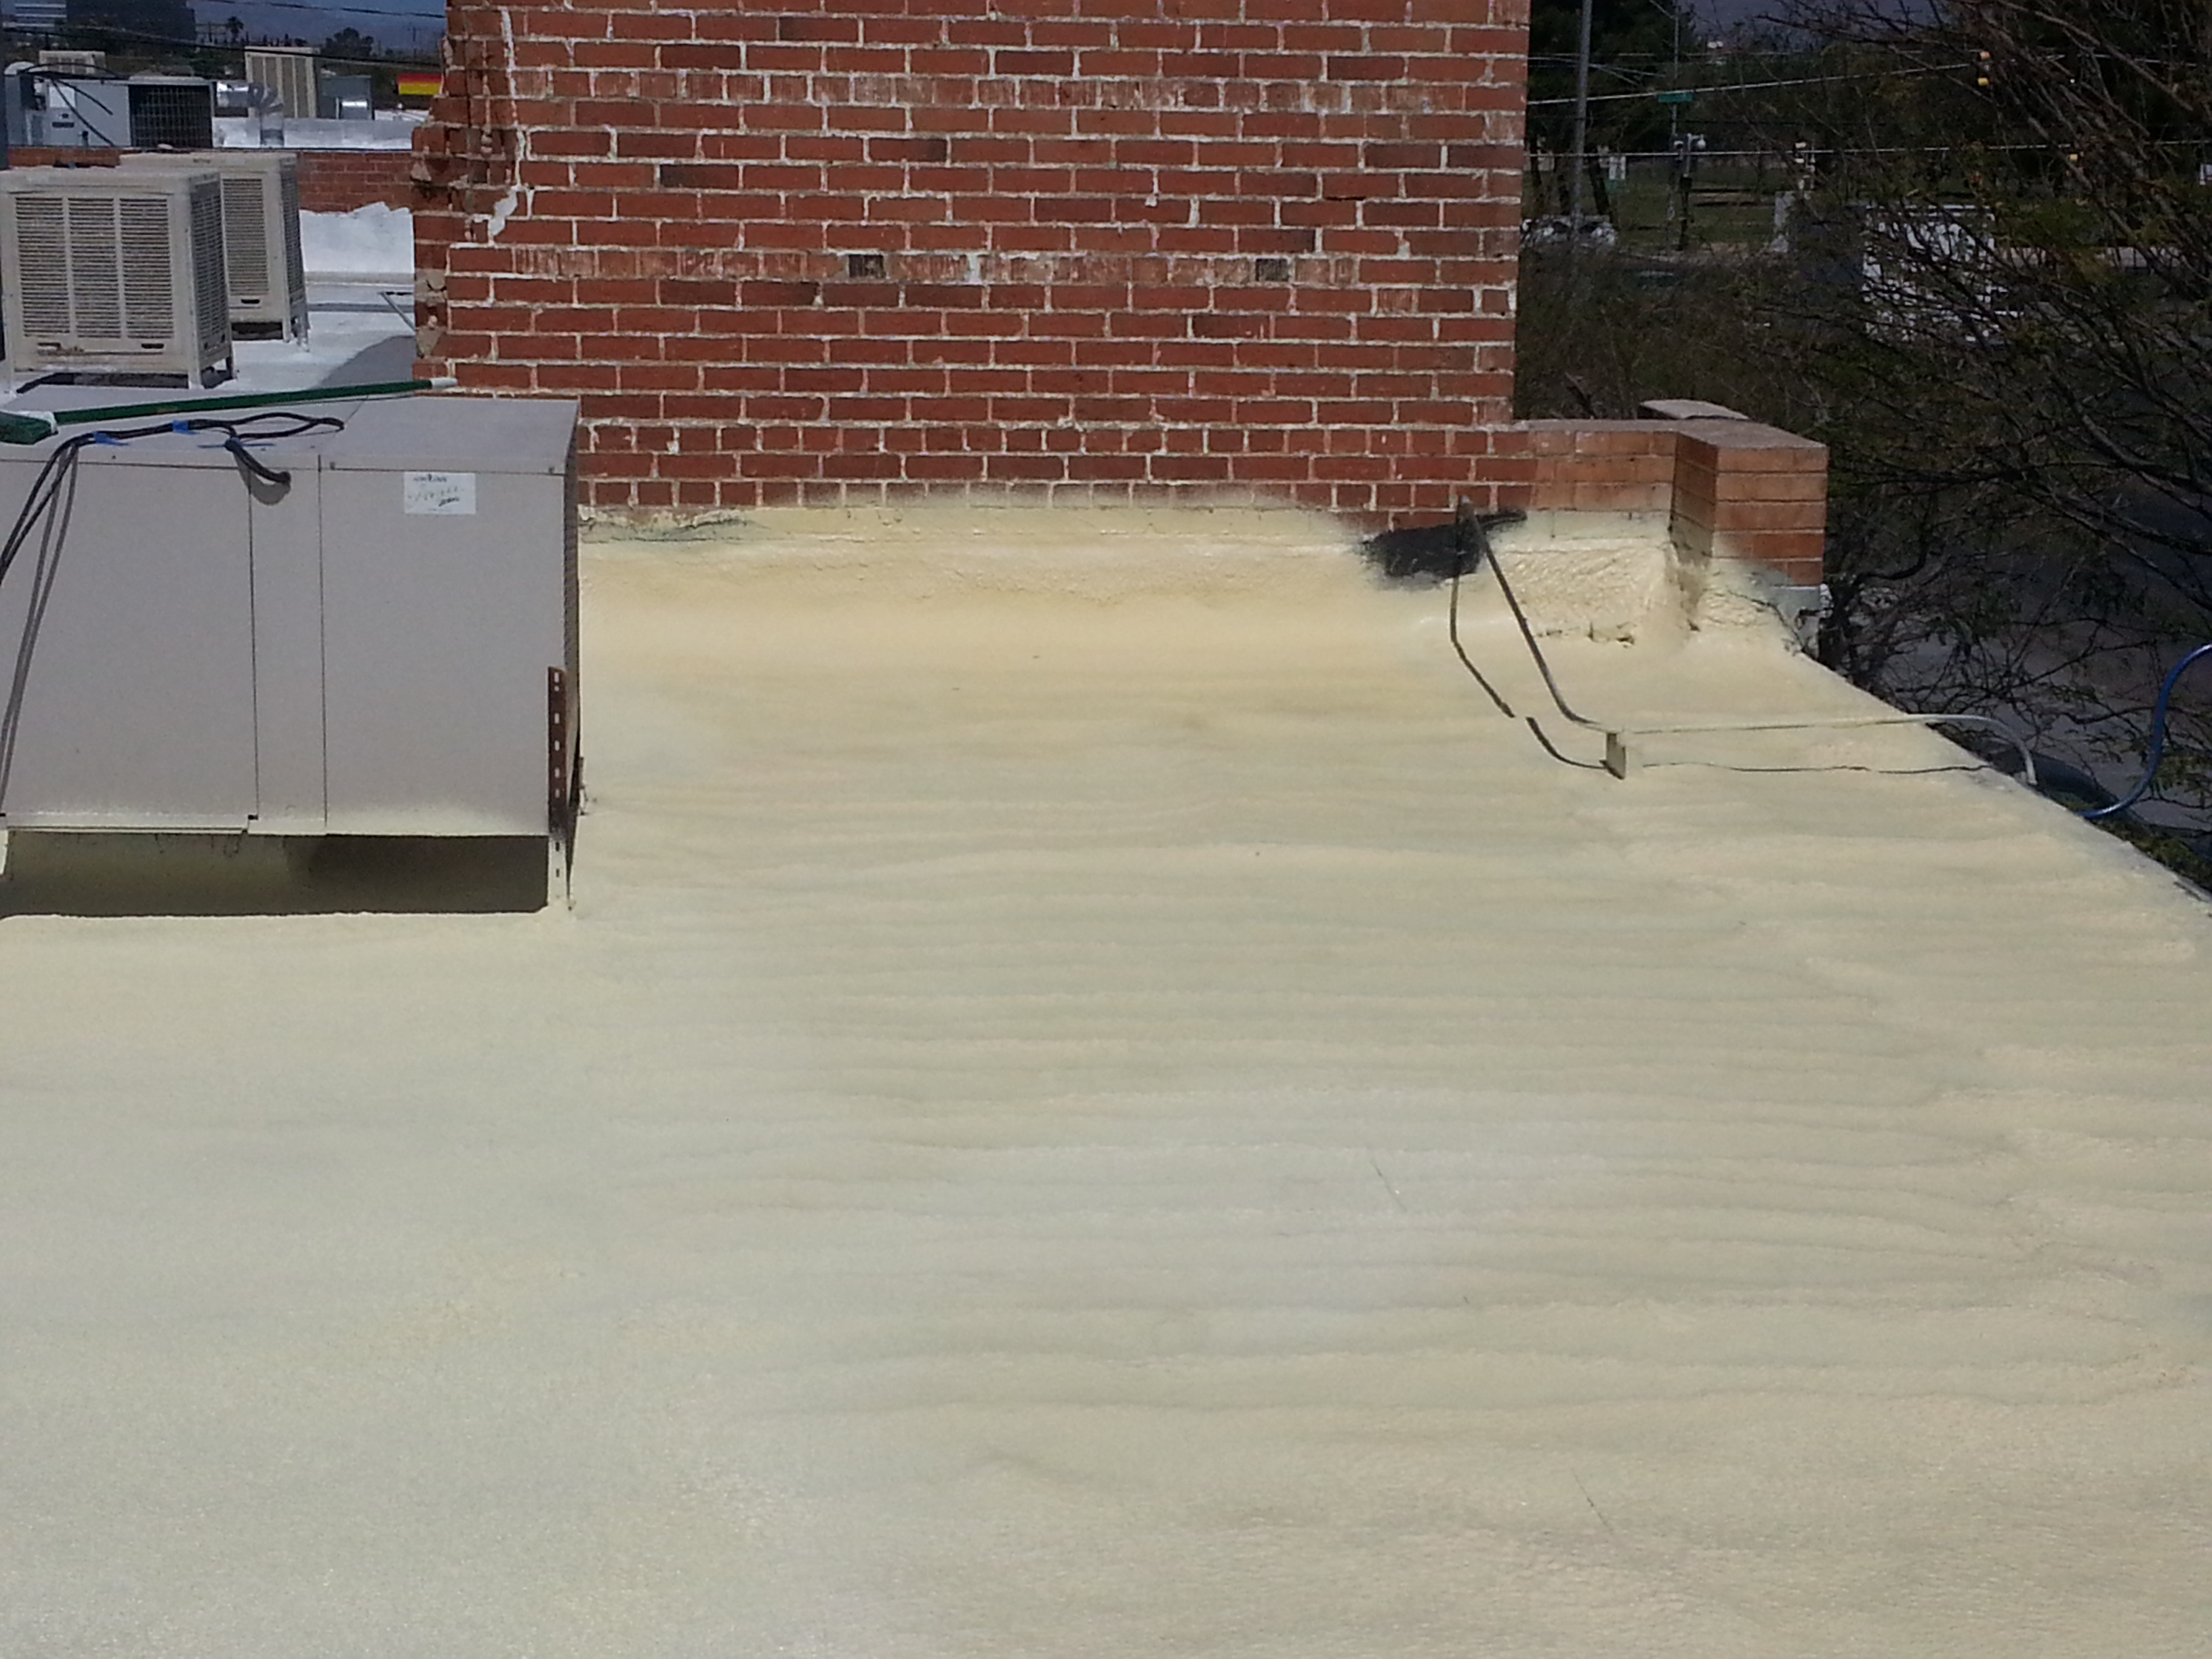 One Of The Great Advantages To Spray Roofing Foam, Over Other Types Of  Products, Is Its Ability To Create An Air Tight, Leak Free Seal. Spray Foam  ...